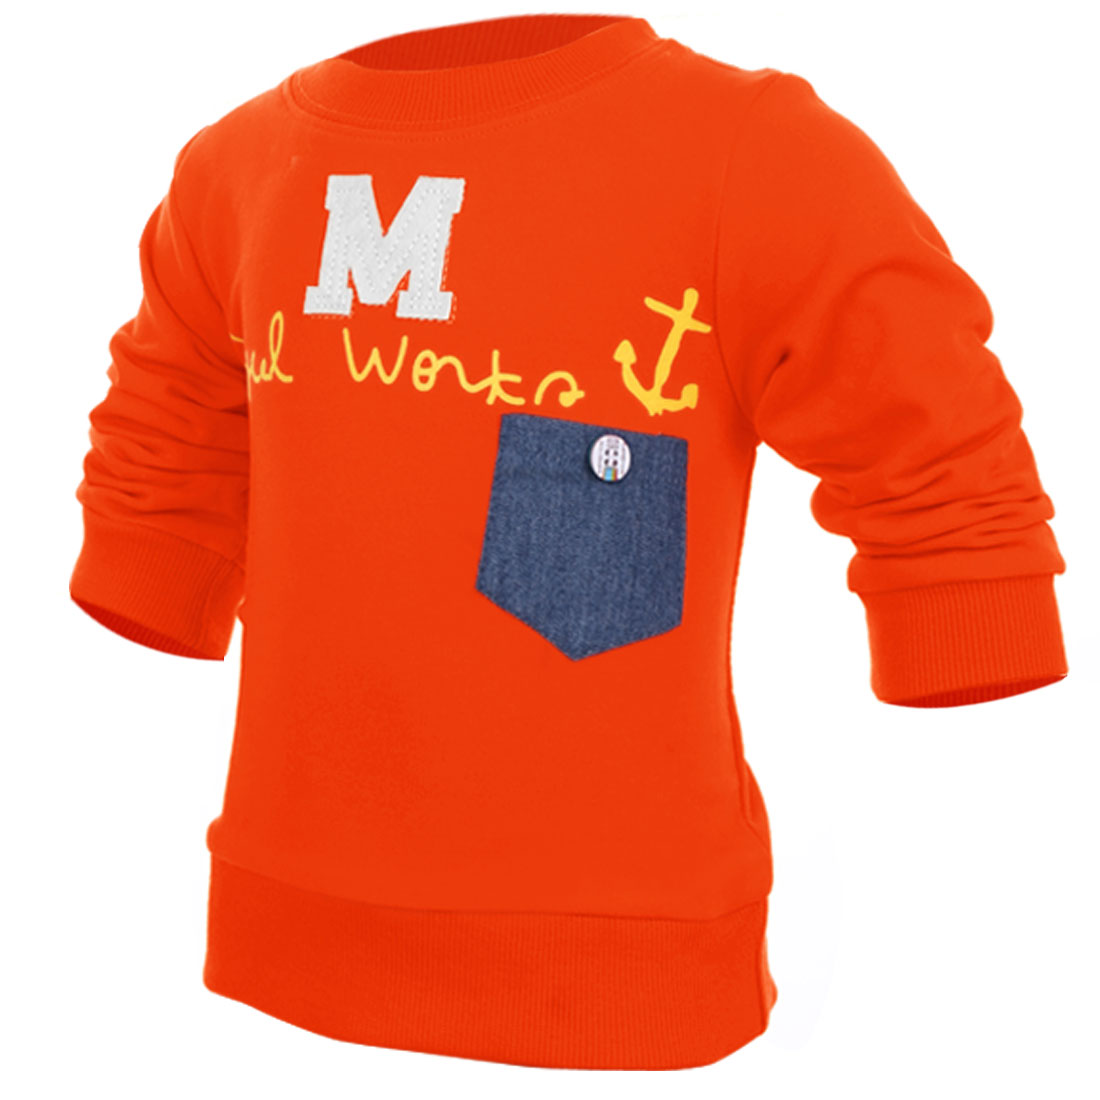 Kids Round Neck Letter M Pattern Pullover Comfortable Orange T-Shirt 4